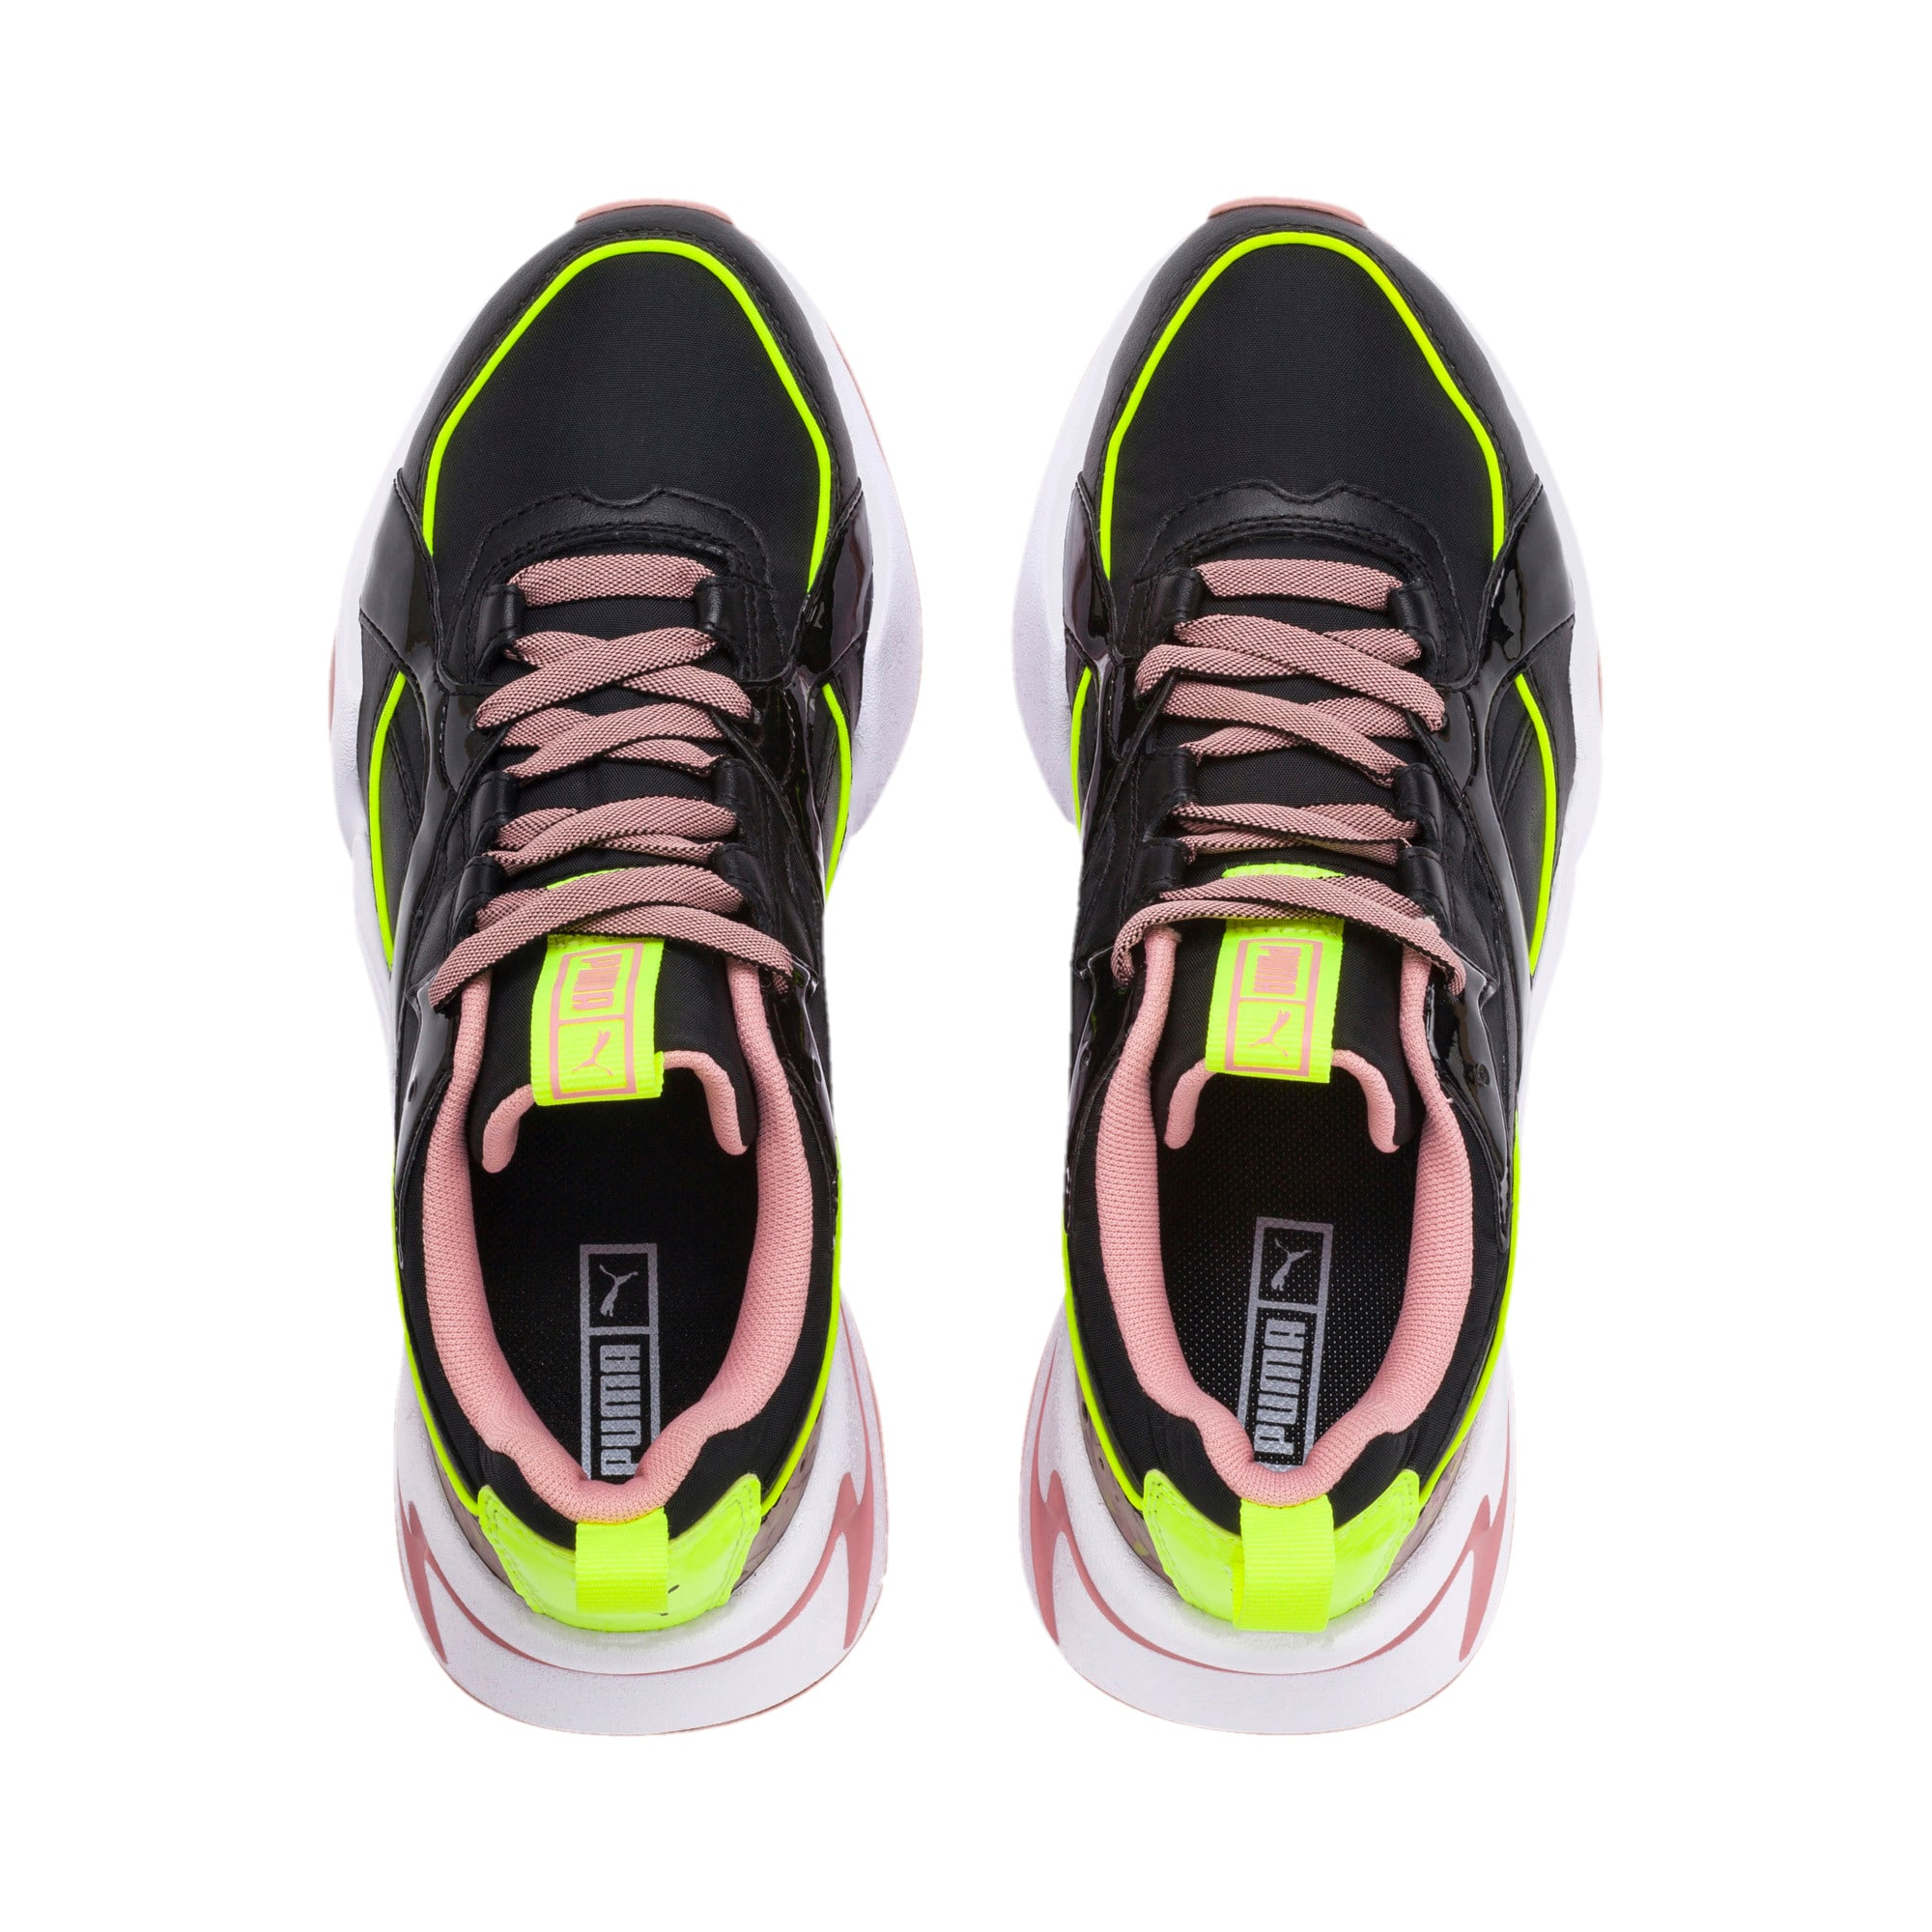 Thumbnail 7 of Nova 2 Shift Women's Trainers, Puma Black-Bridal Rose, medium